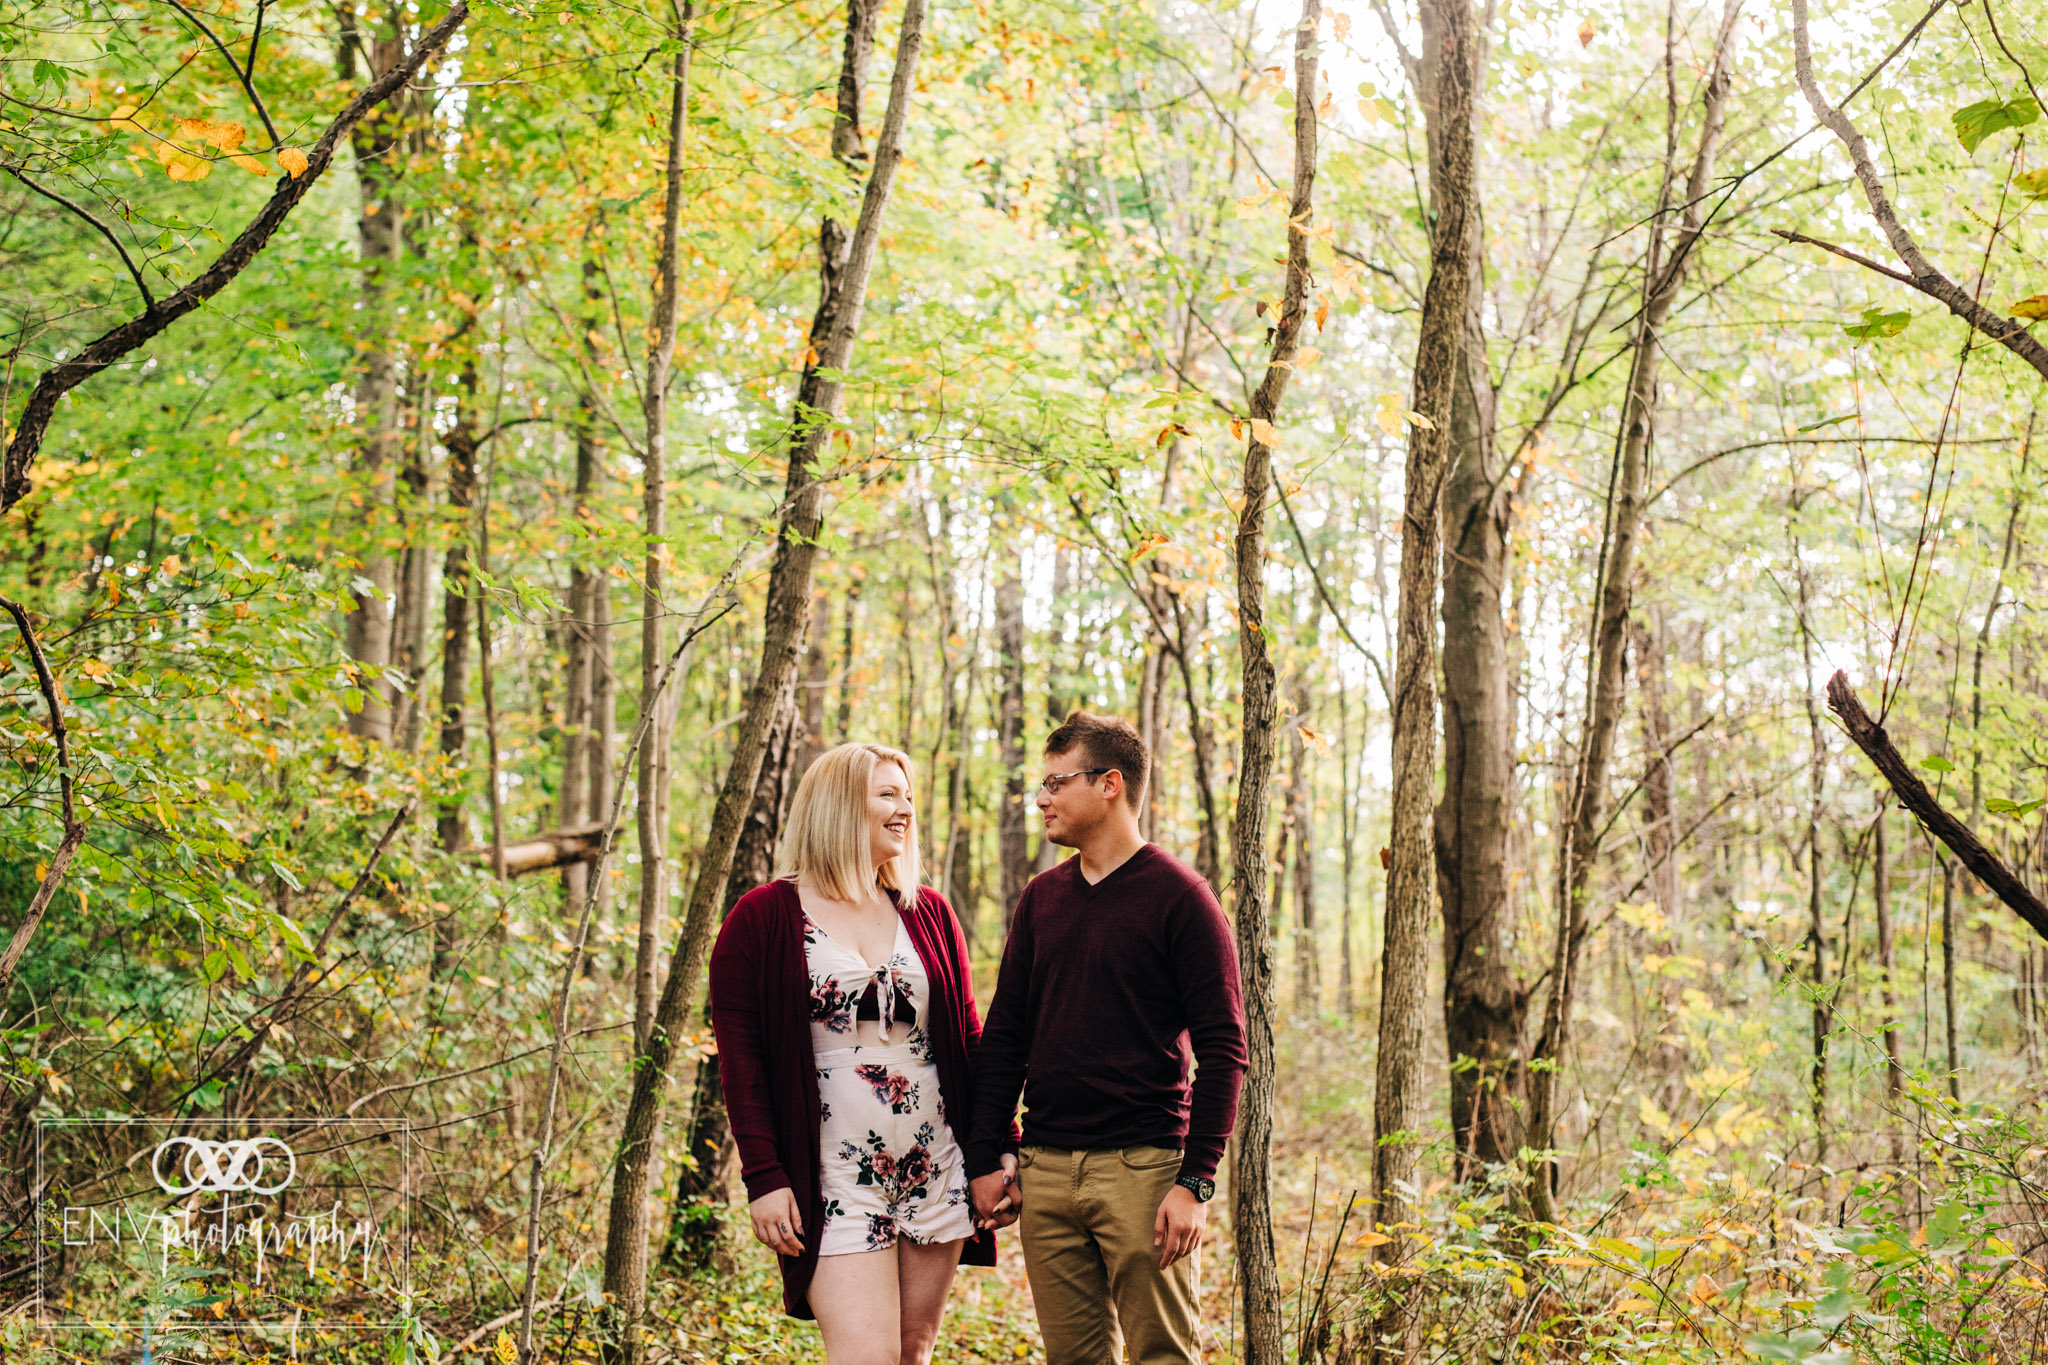 Mount Vernon Ohio Columbus Ohio engagement photography (3).jpg